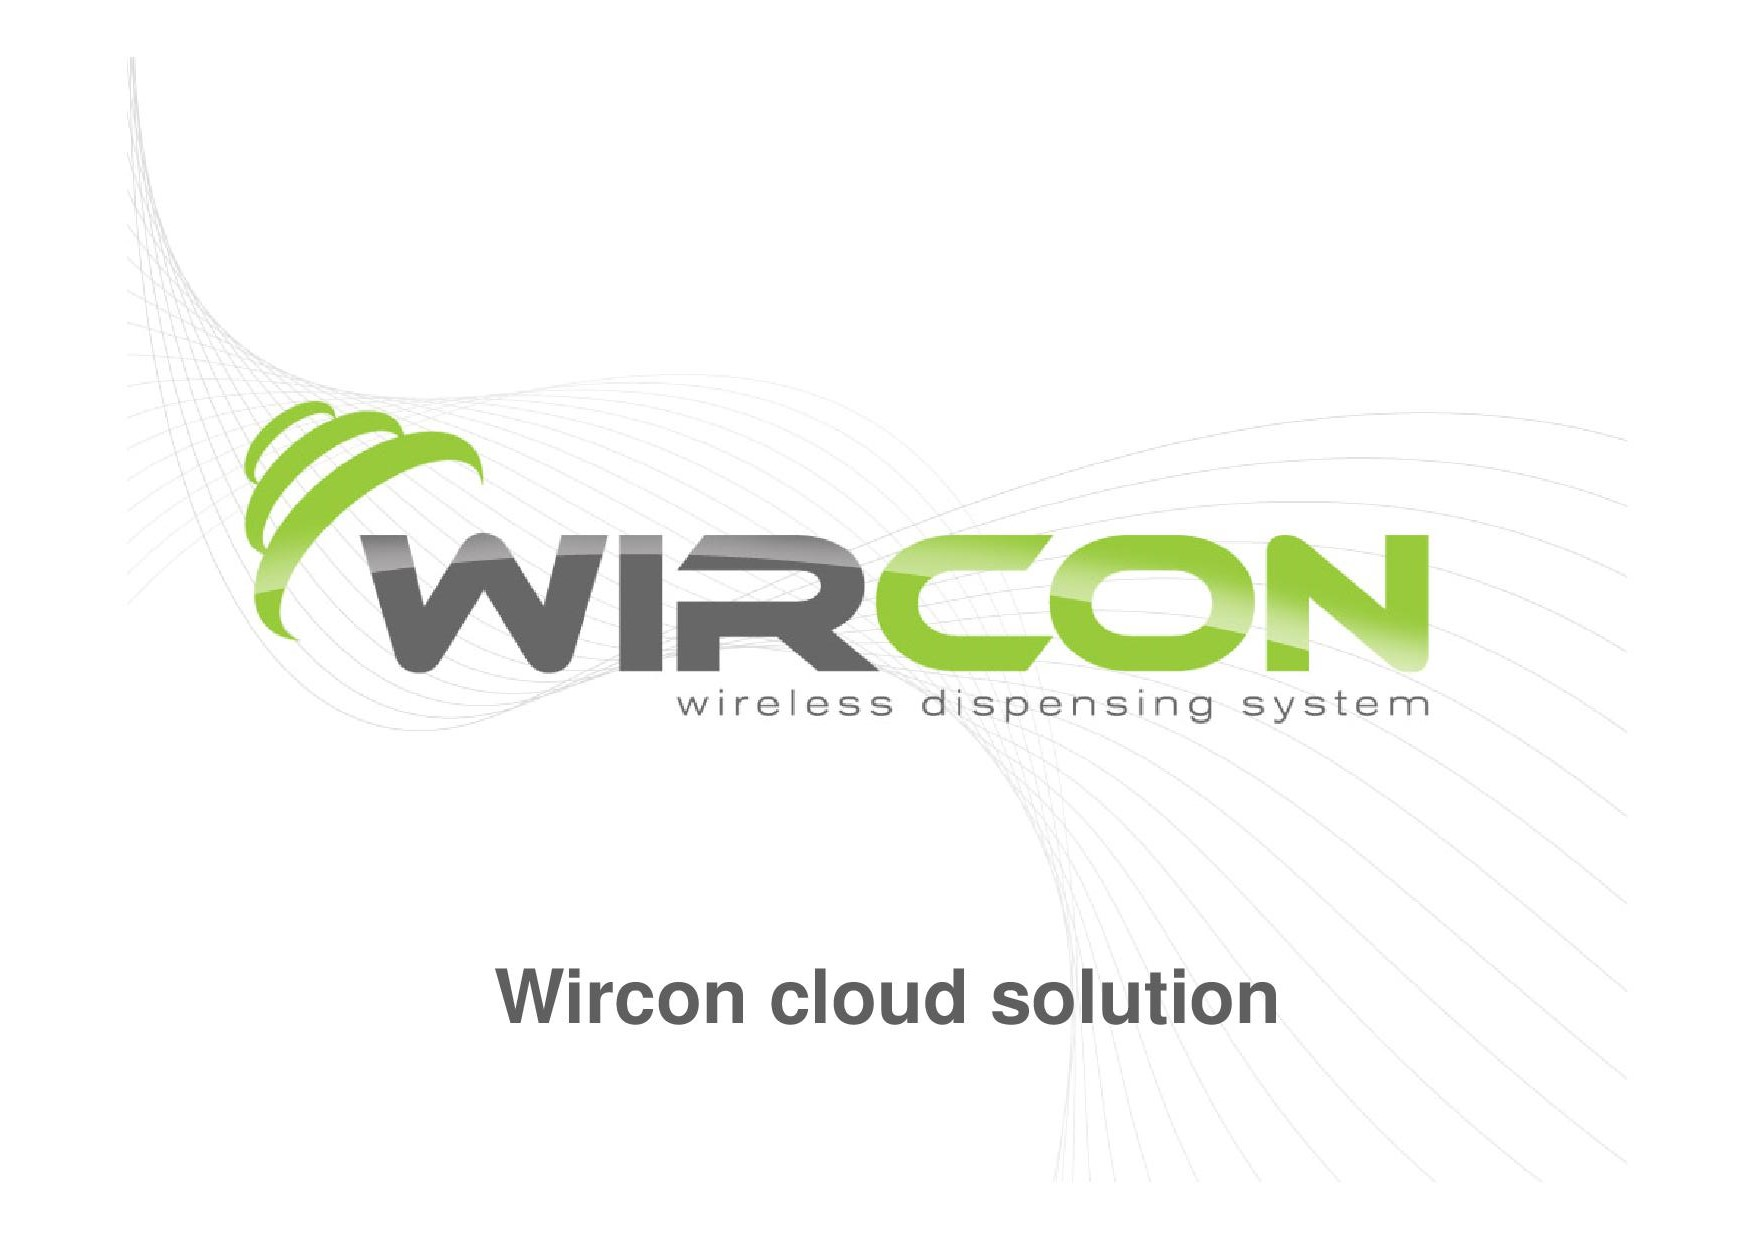 Wircon cloud solution new 2